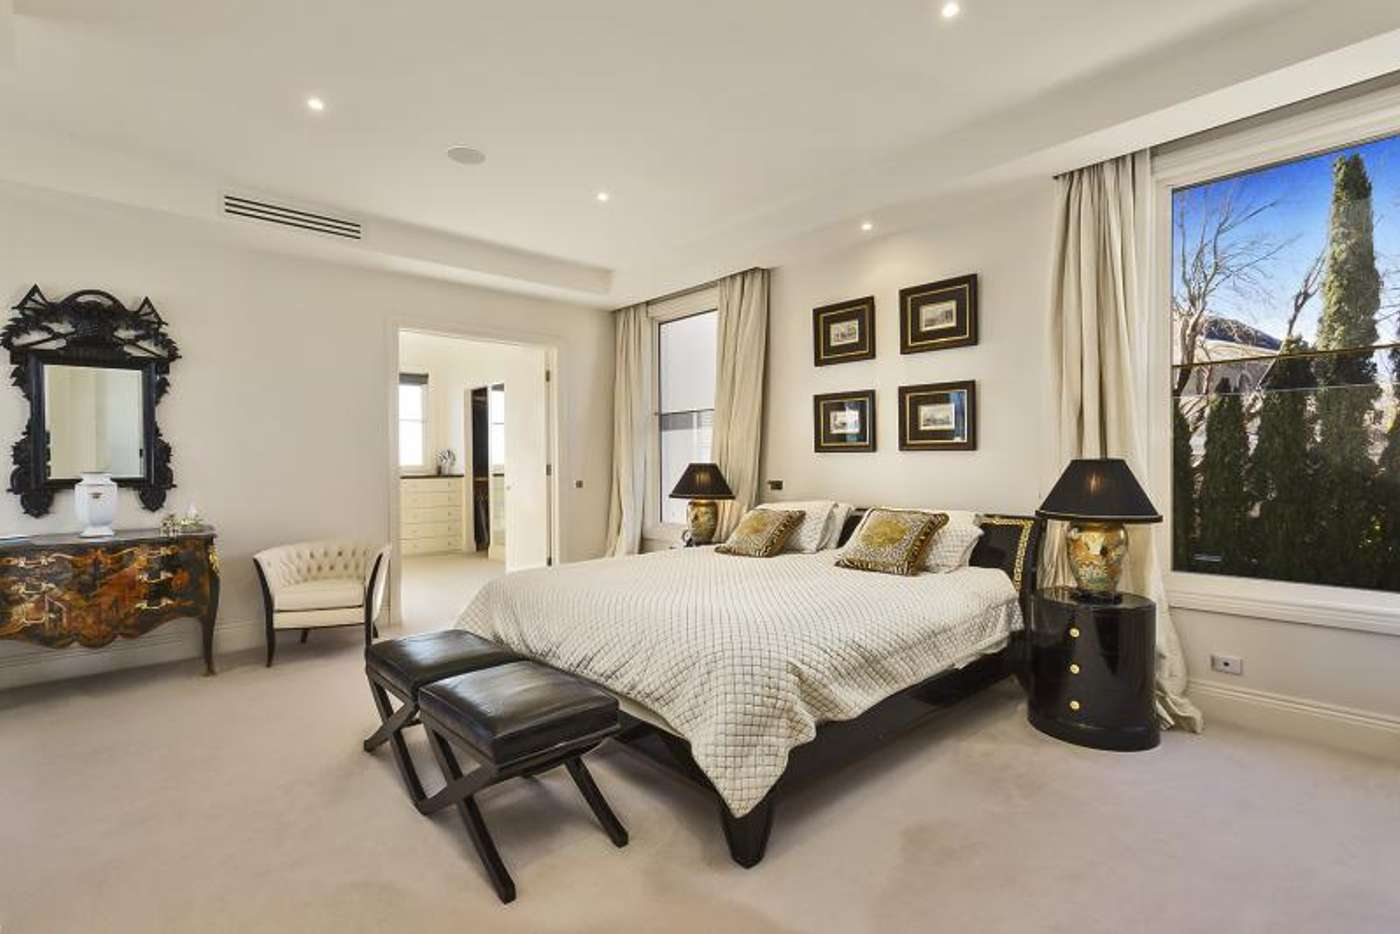 Sixth view of Homely house listing, 19 Watts Parade, Mount Eliza VIC 3930